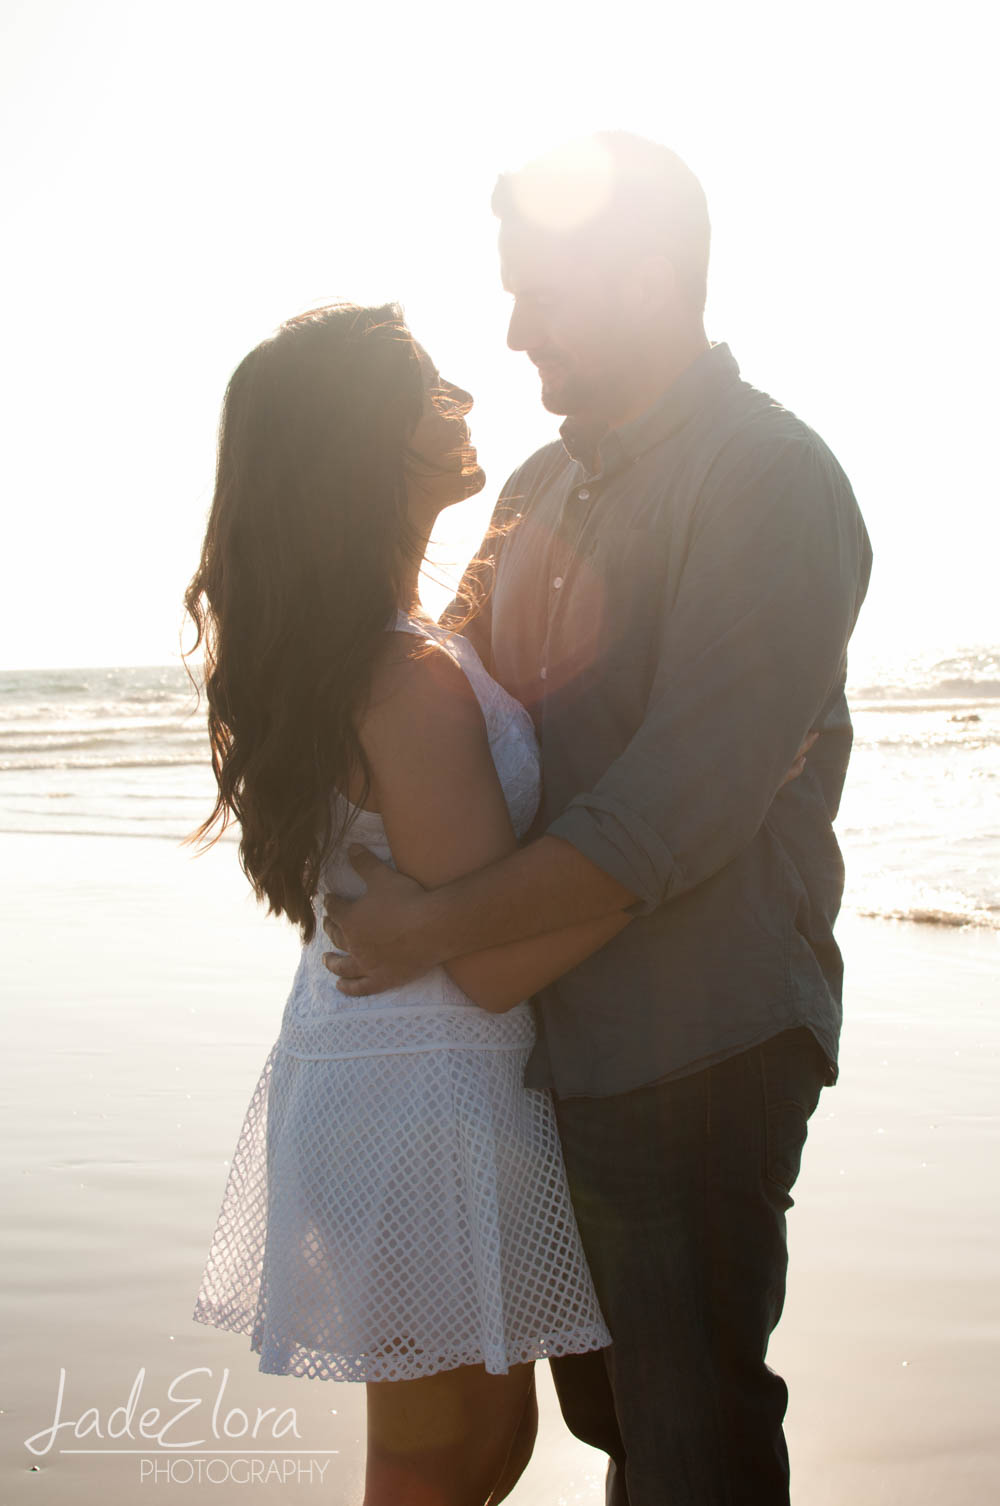 JadeEloraPhotography-Engagement-Wedding-Blog-13.jpg